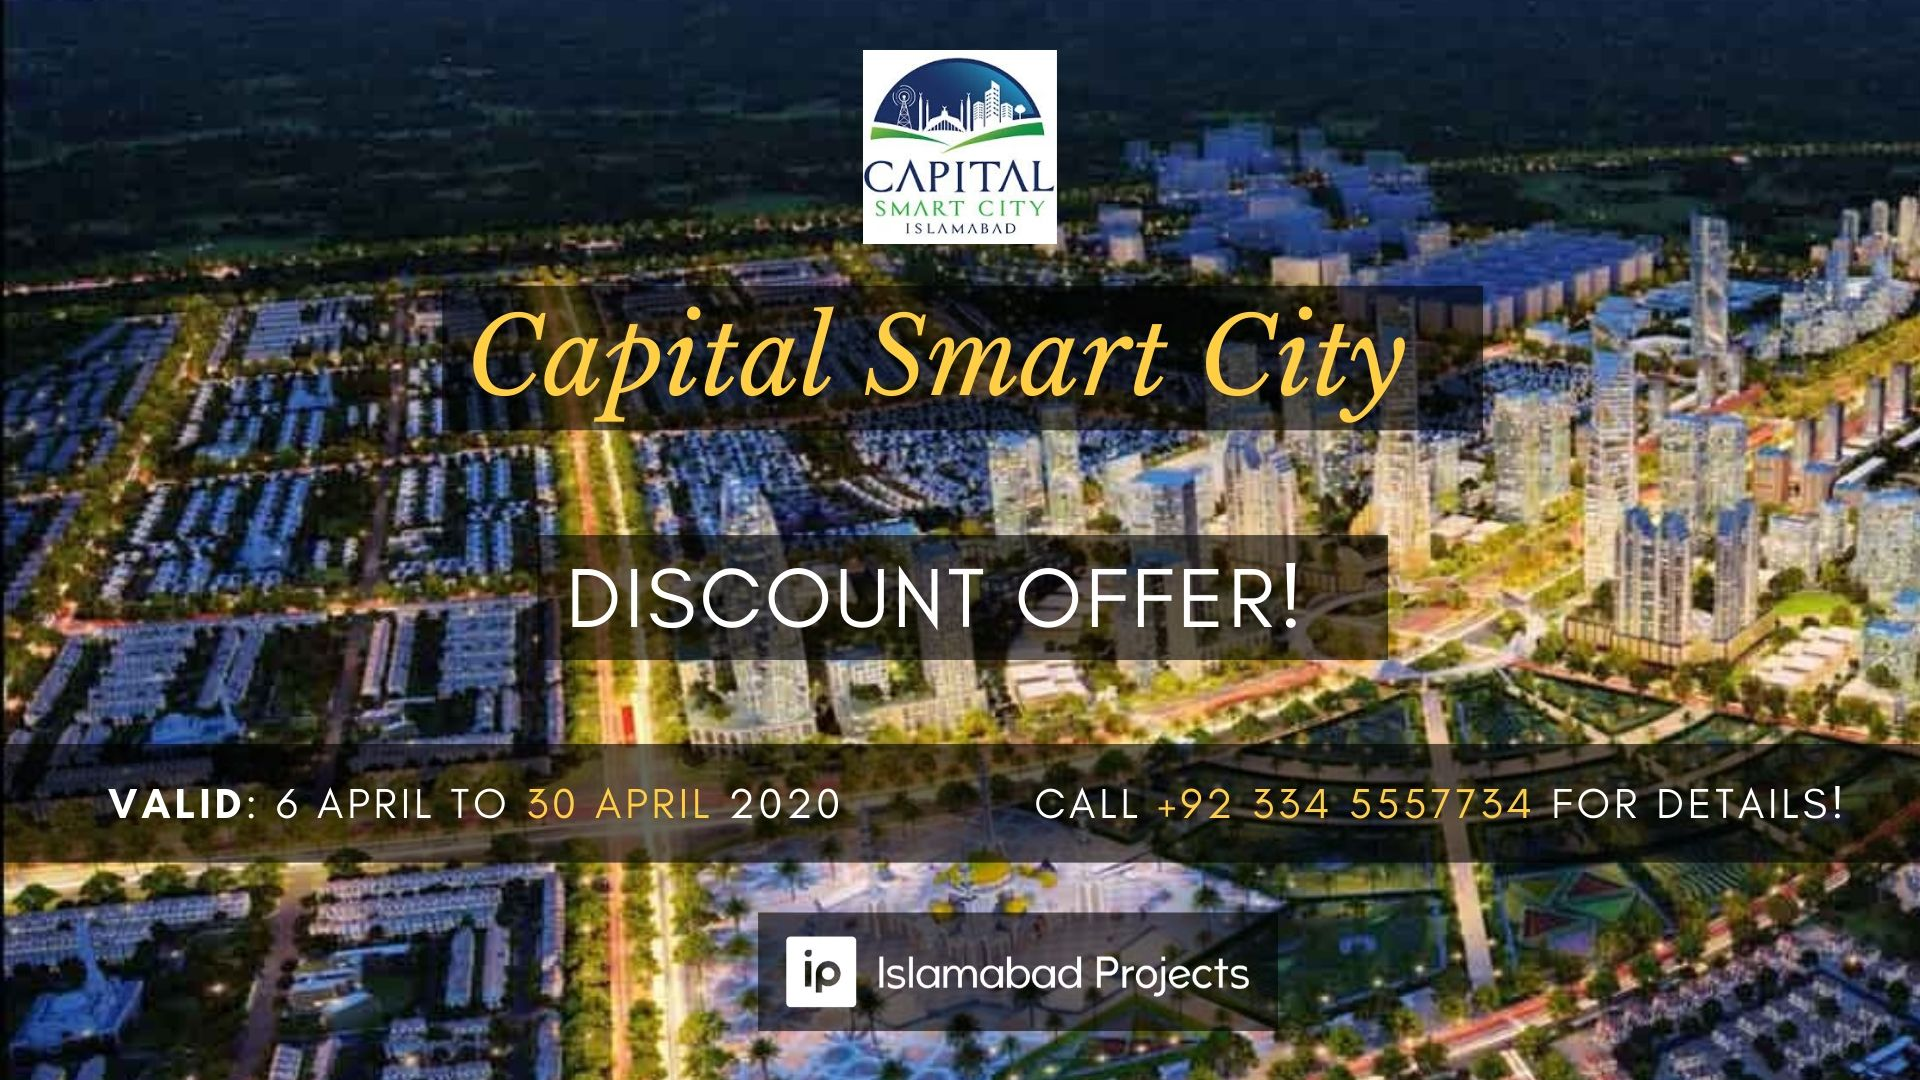 capital smart city brings discount offer for existing and new members during coronavirus pandemic